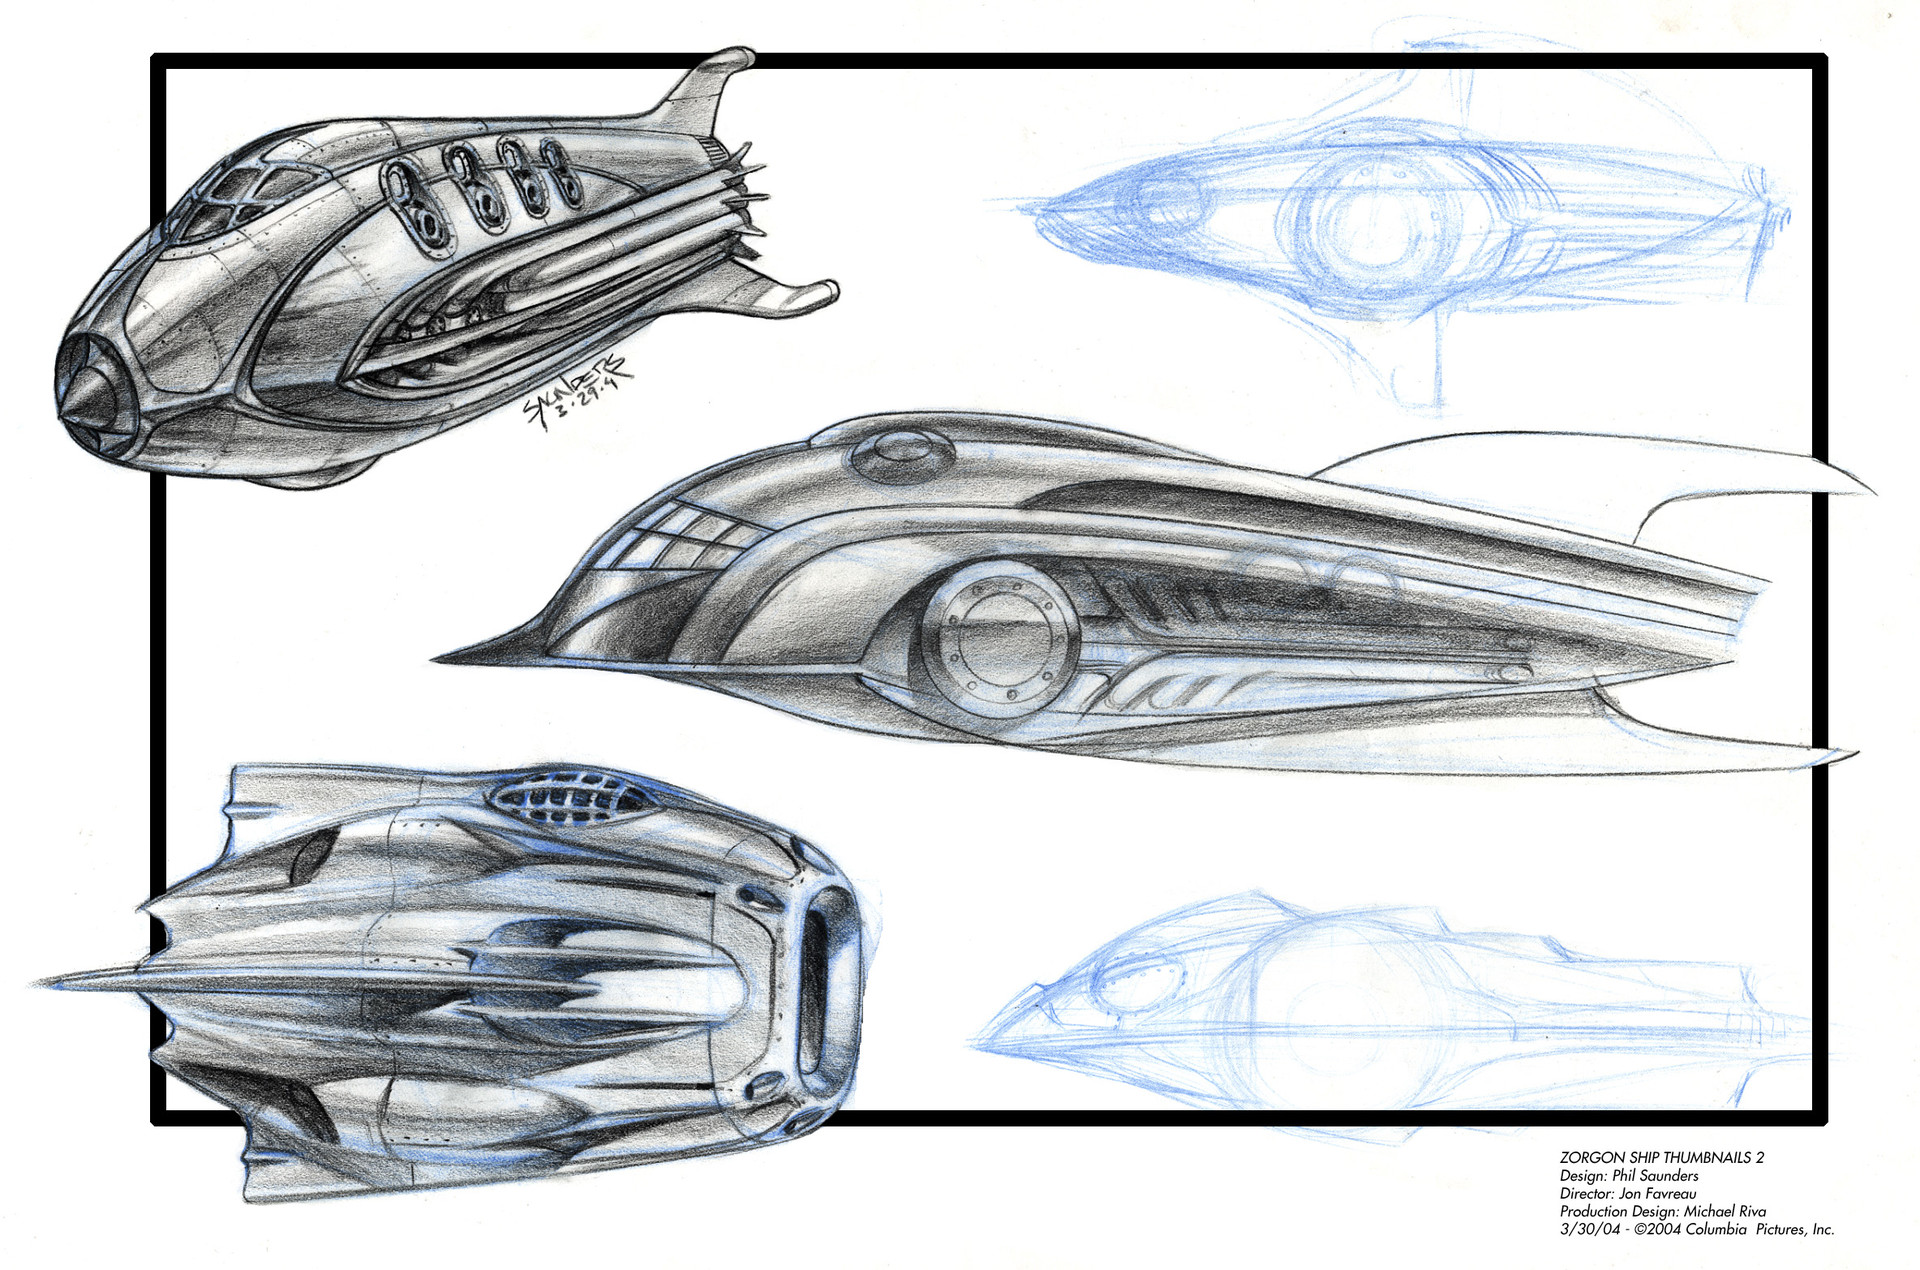 Second Page of Prismacolor sketches for the Zorgon Spaceship. The one in the middle has a lot of elements of the final design.